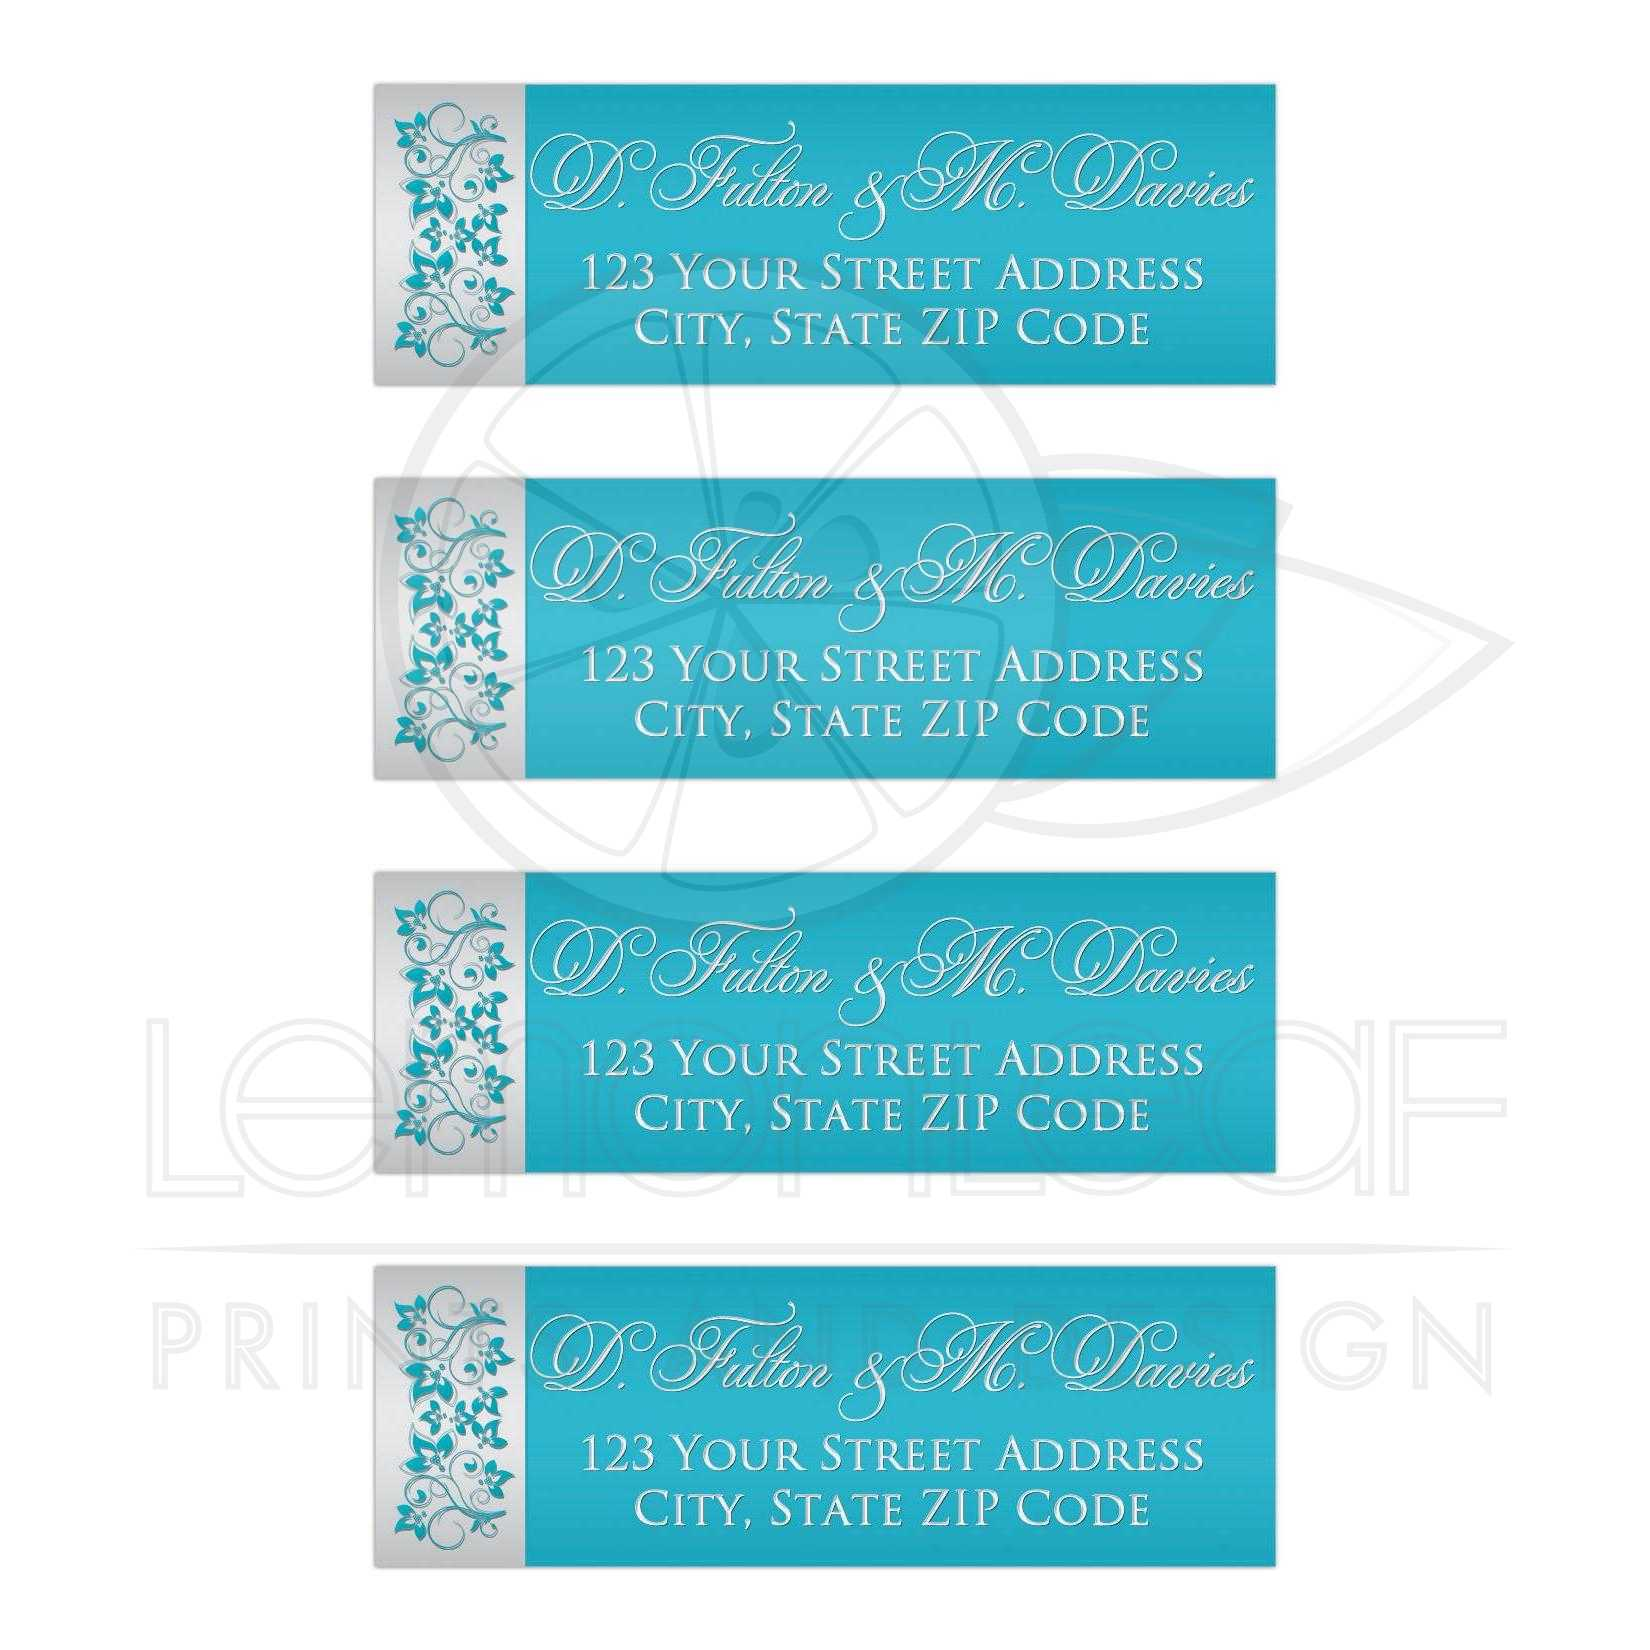 personalized address labels aqua blue silver grey floral